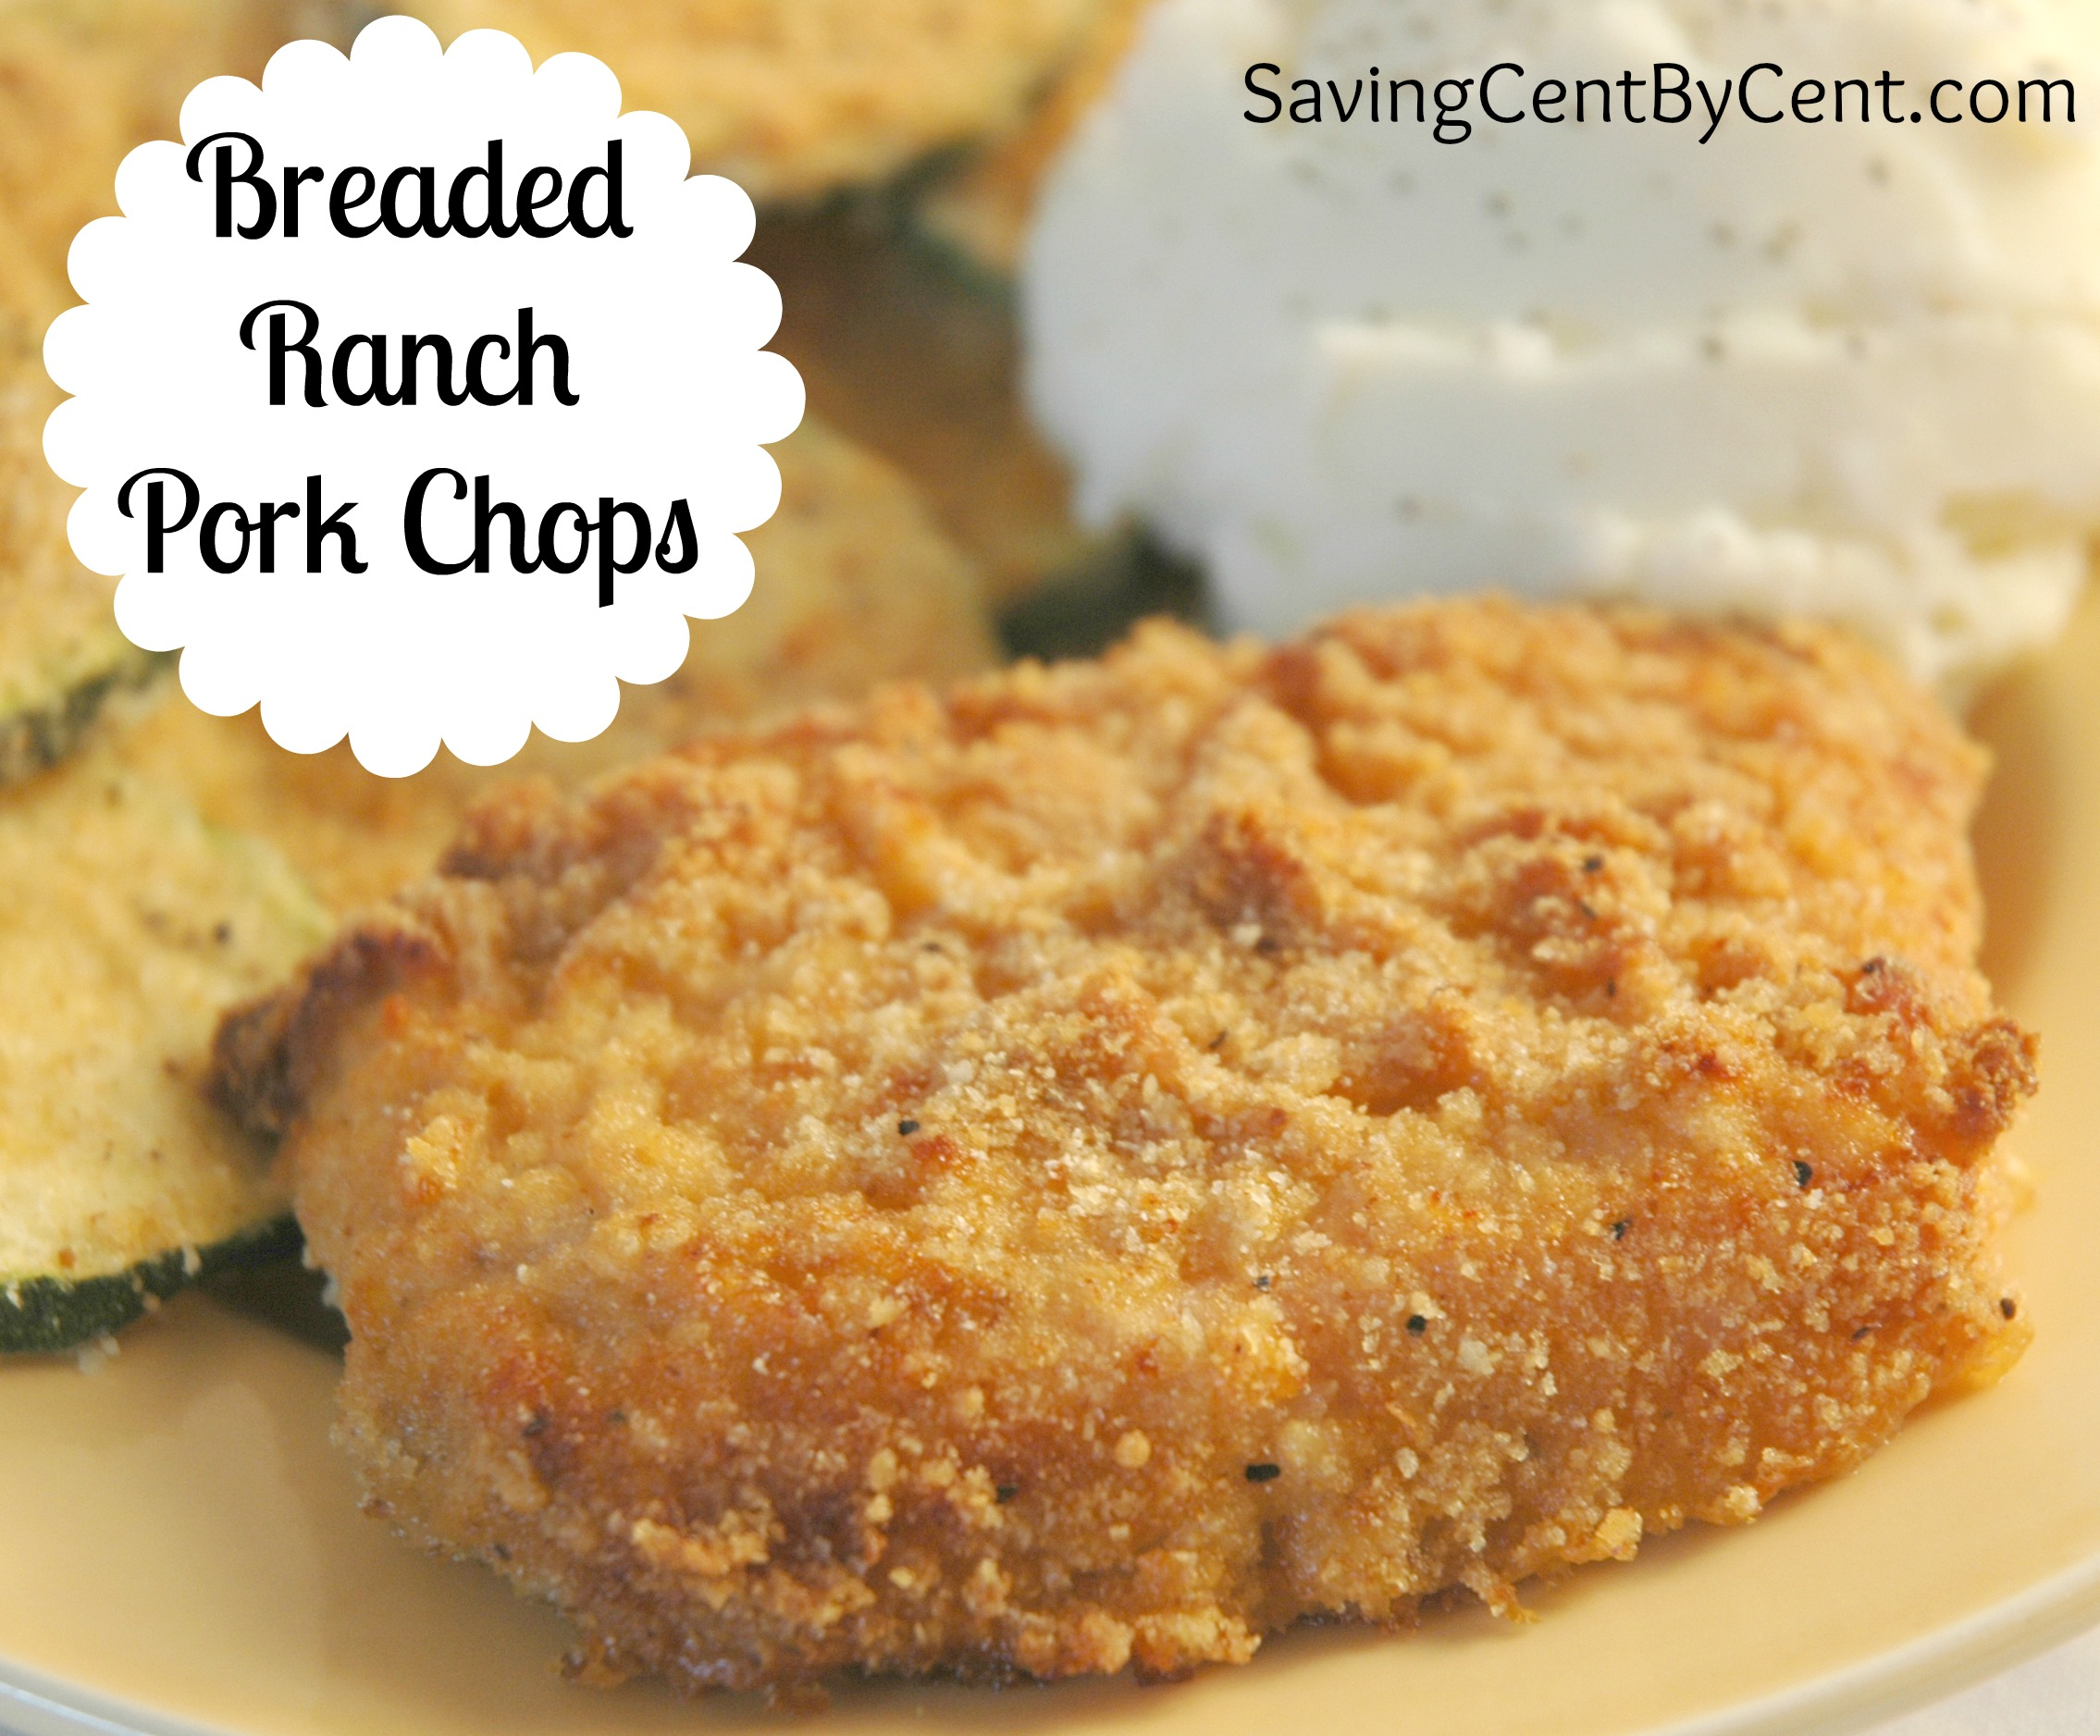 These Ranch Pork Chops only took me a few minutes to throw in the oven ...